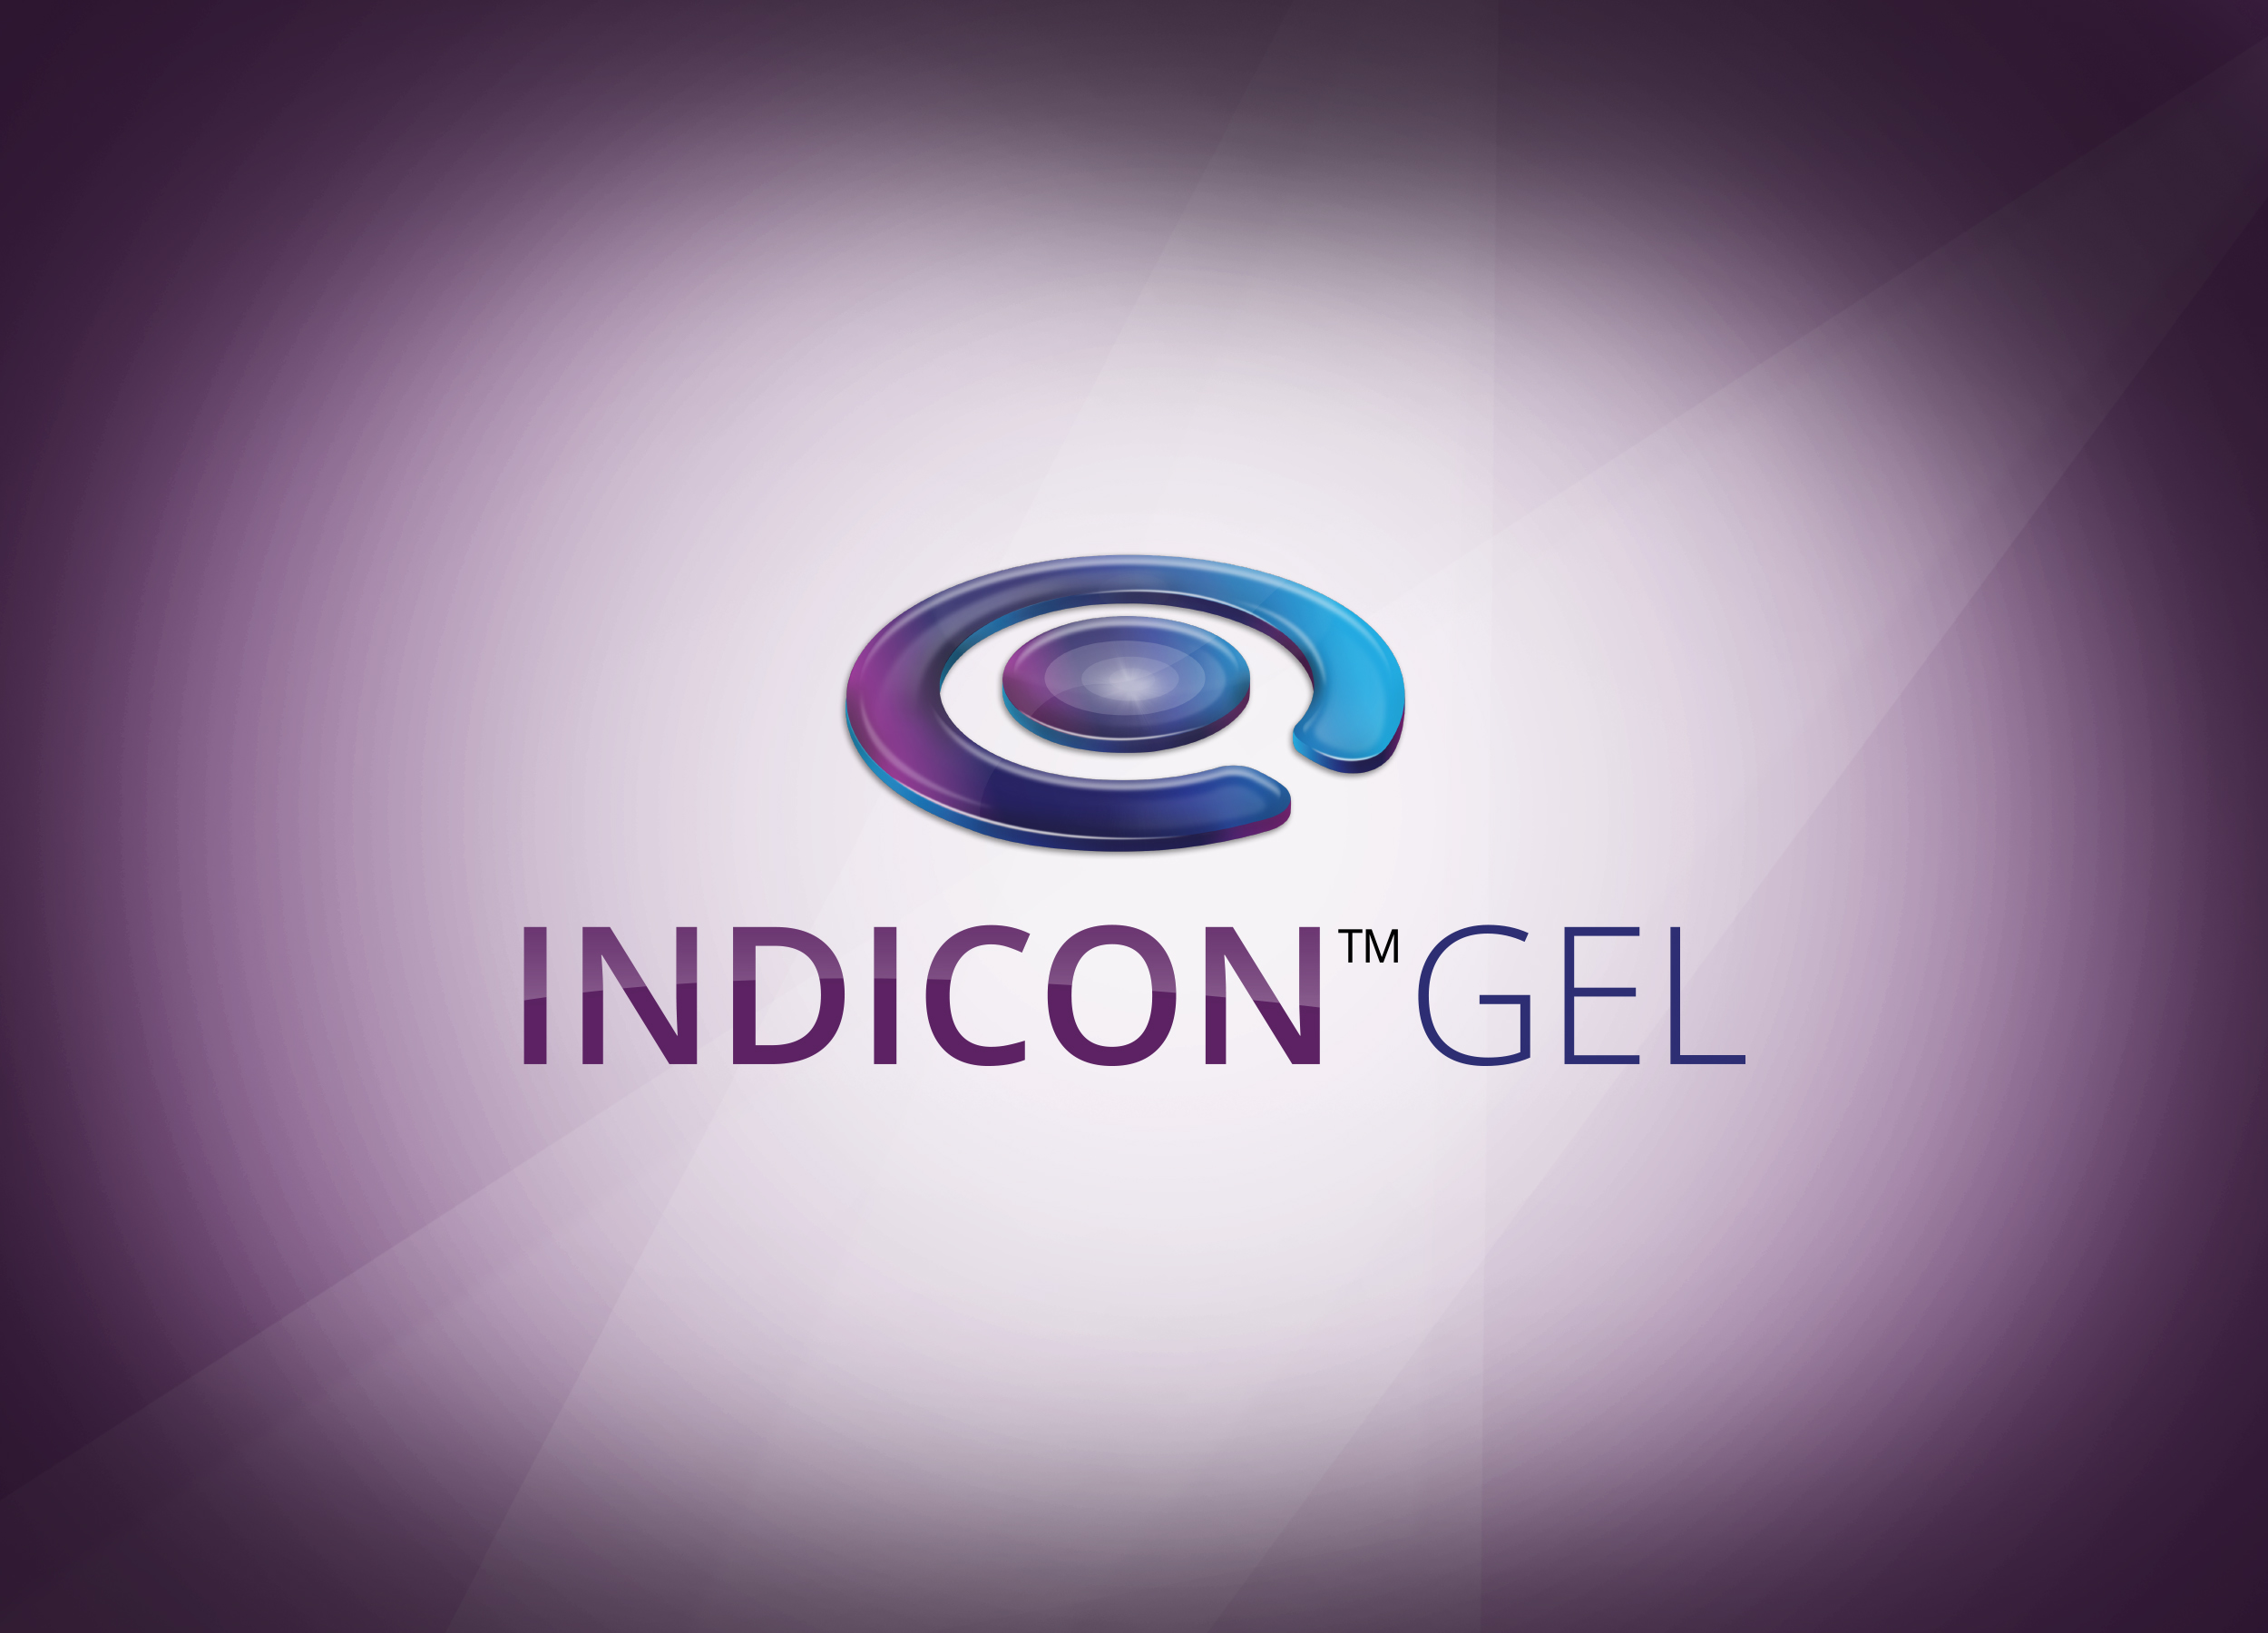 Indicon Gel logo